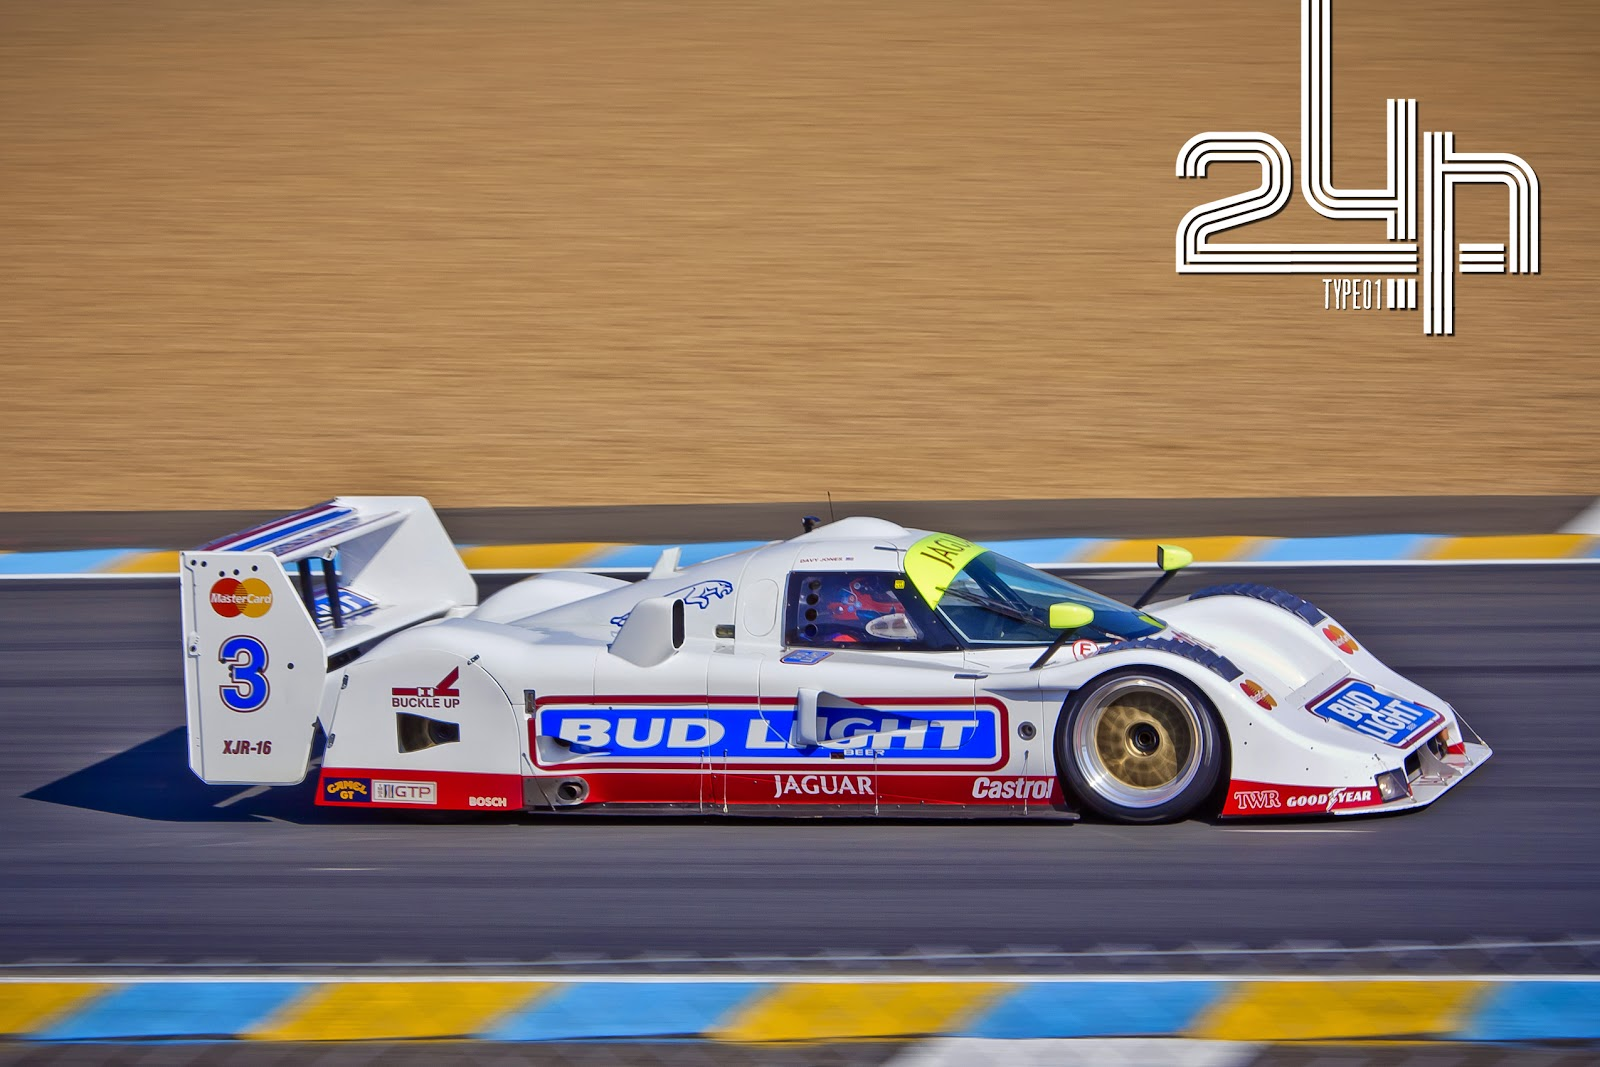 Le container 24h du mans legend groupe c by antony for Garage zf antony